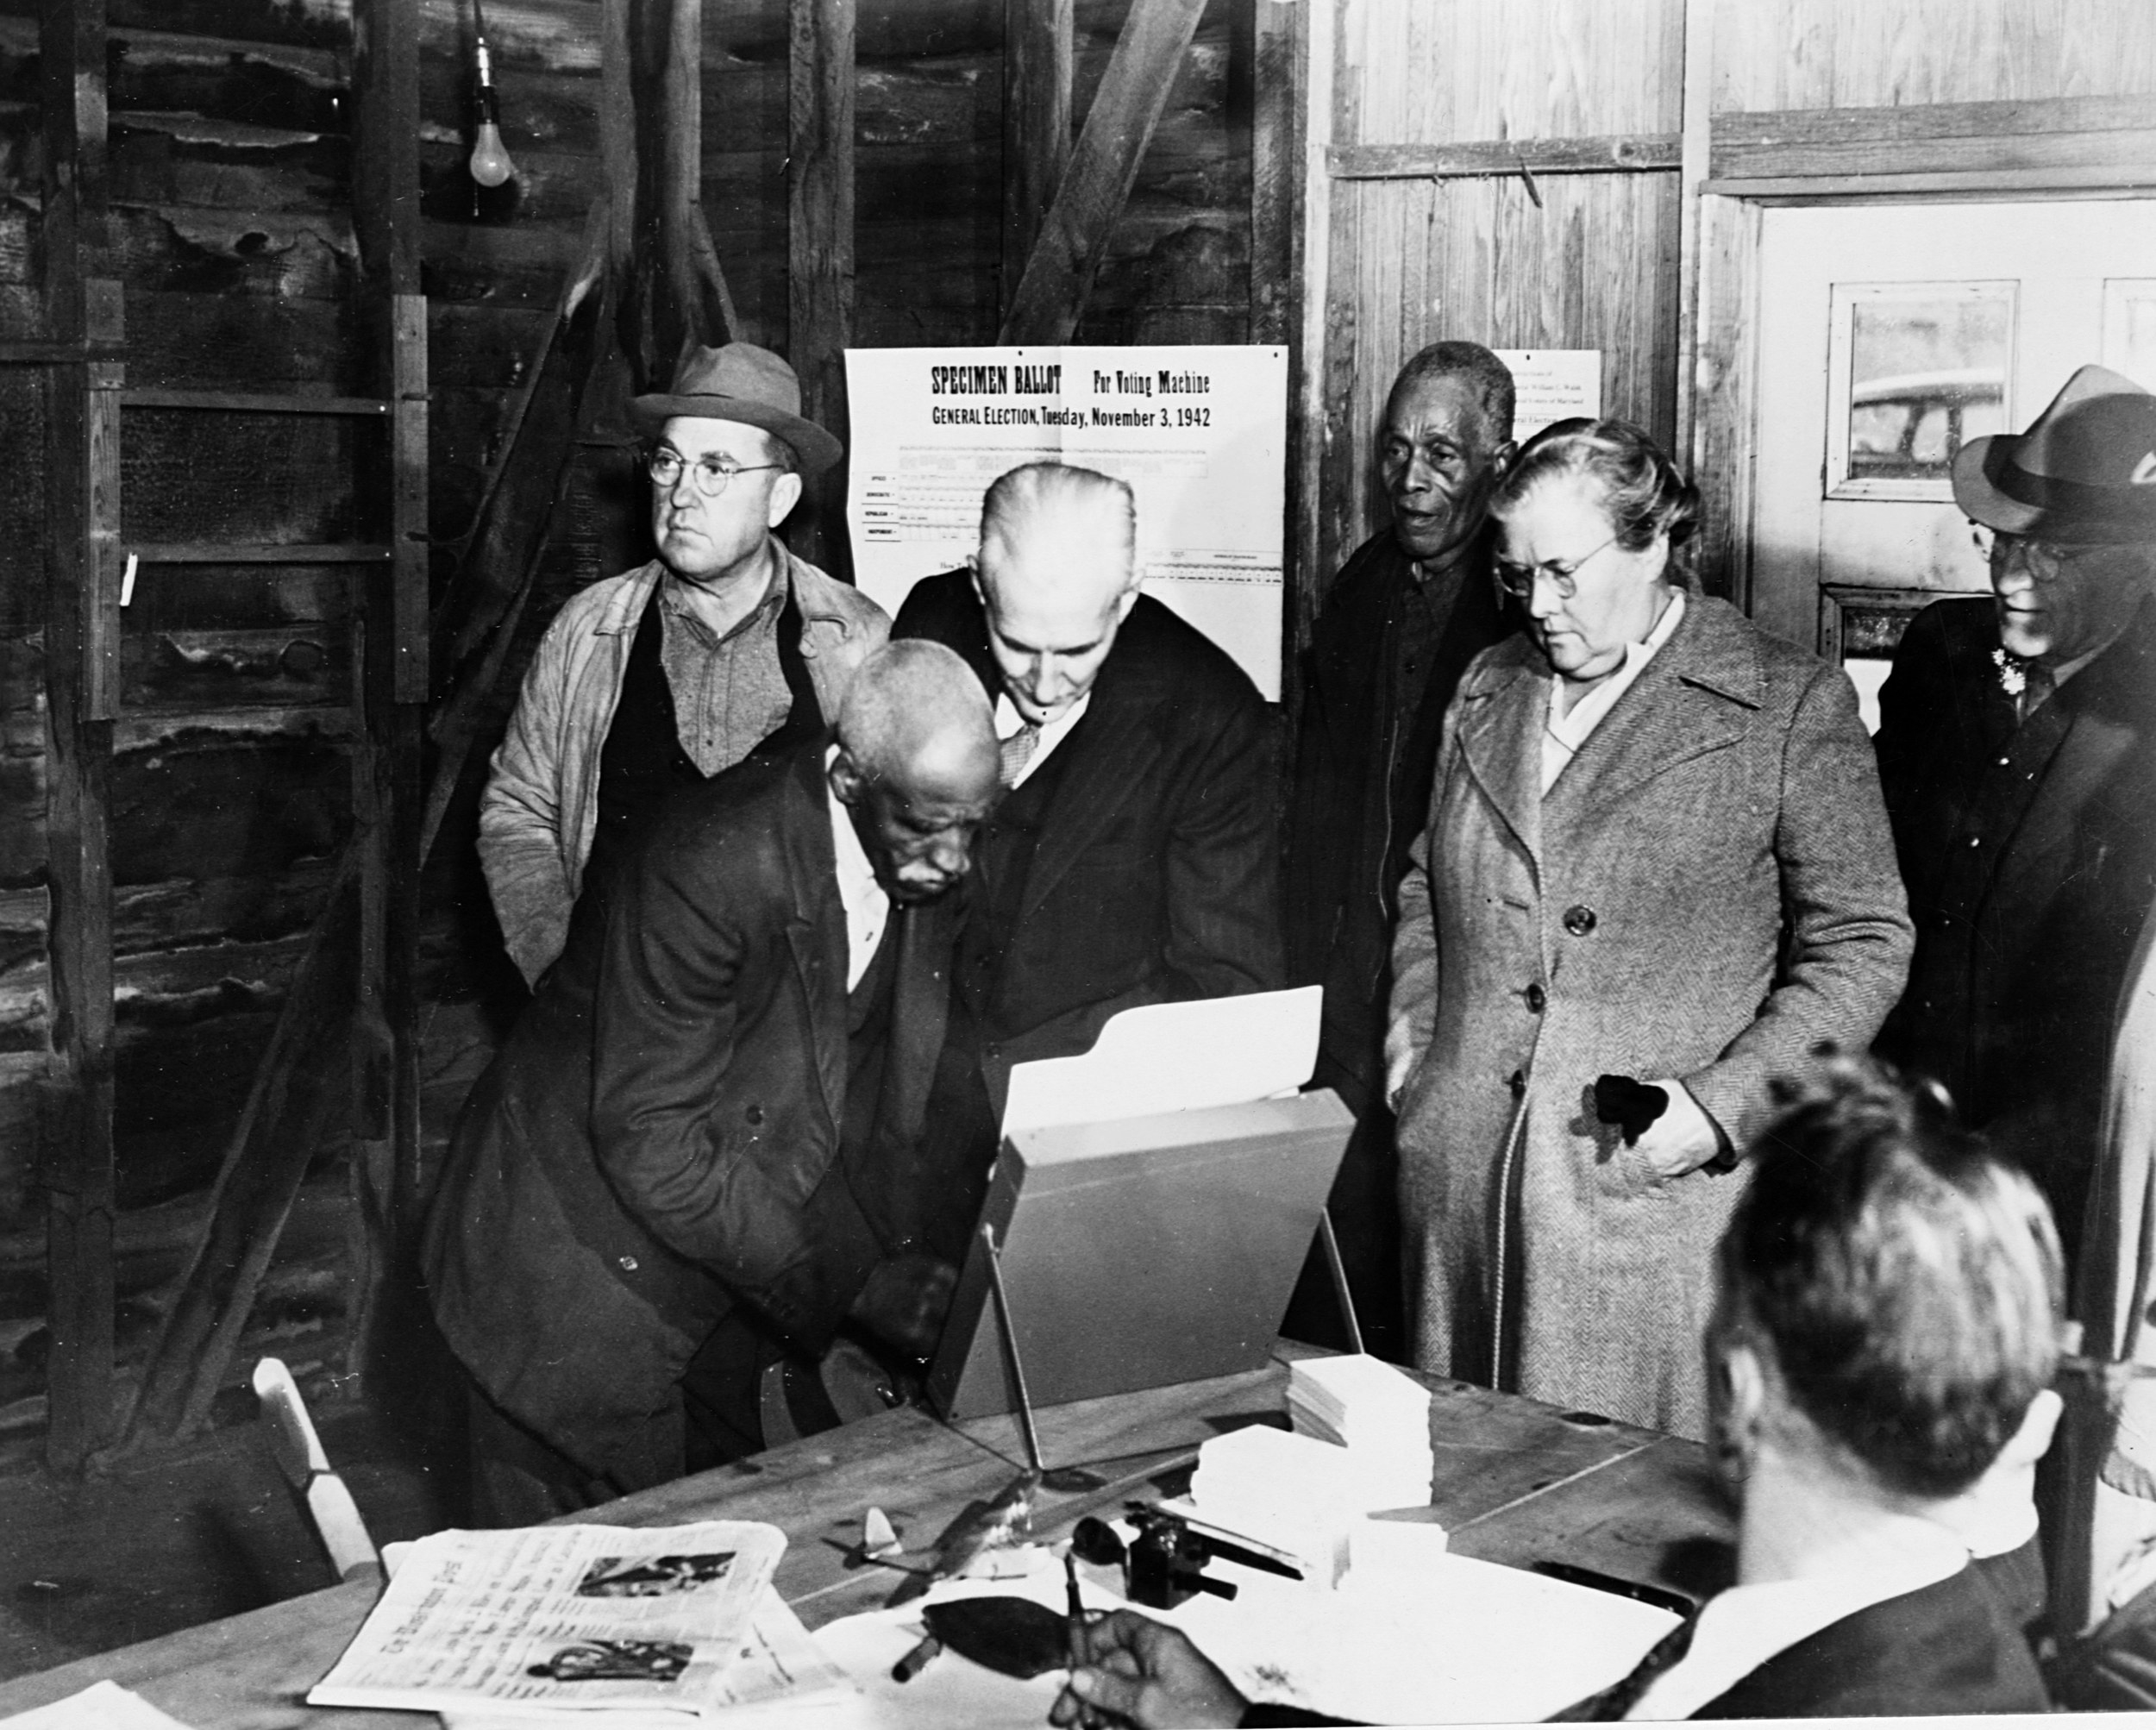 An elderly black man at the ballot box while a line of white and black people in overcoats wait behind him